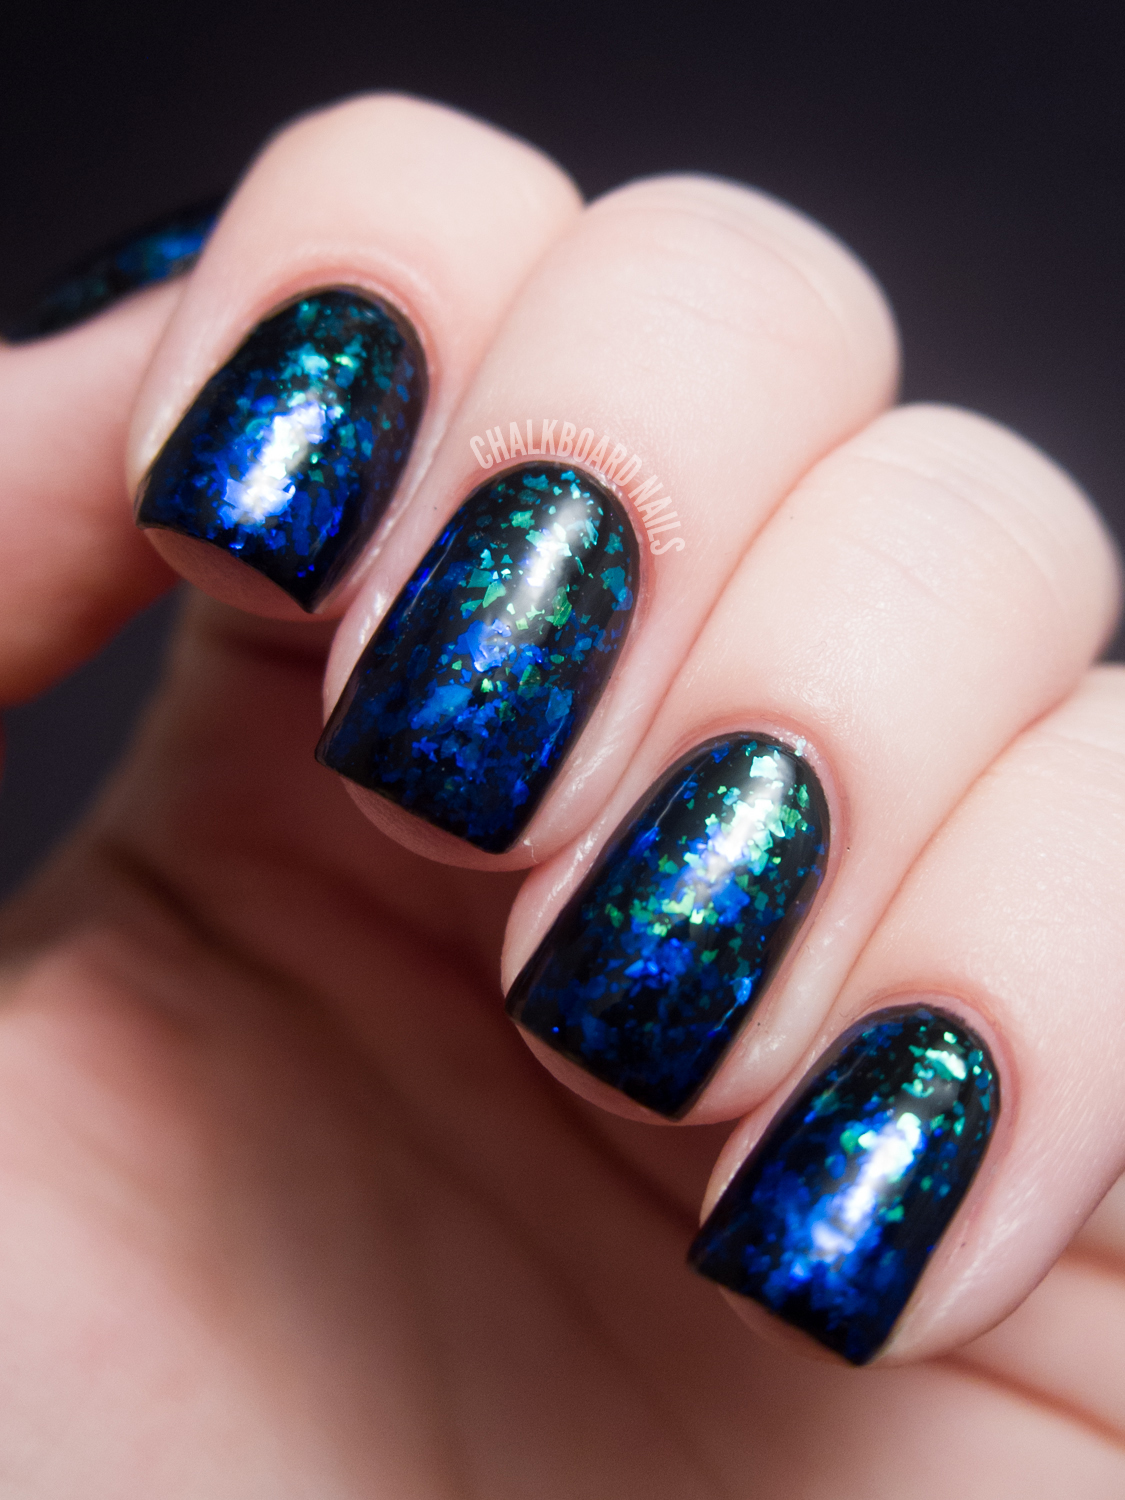 Blue Nail Polish Manicure Designs: Blue To Green Flakie Gradient